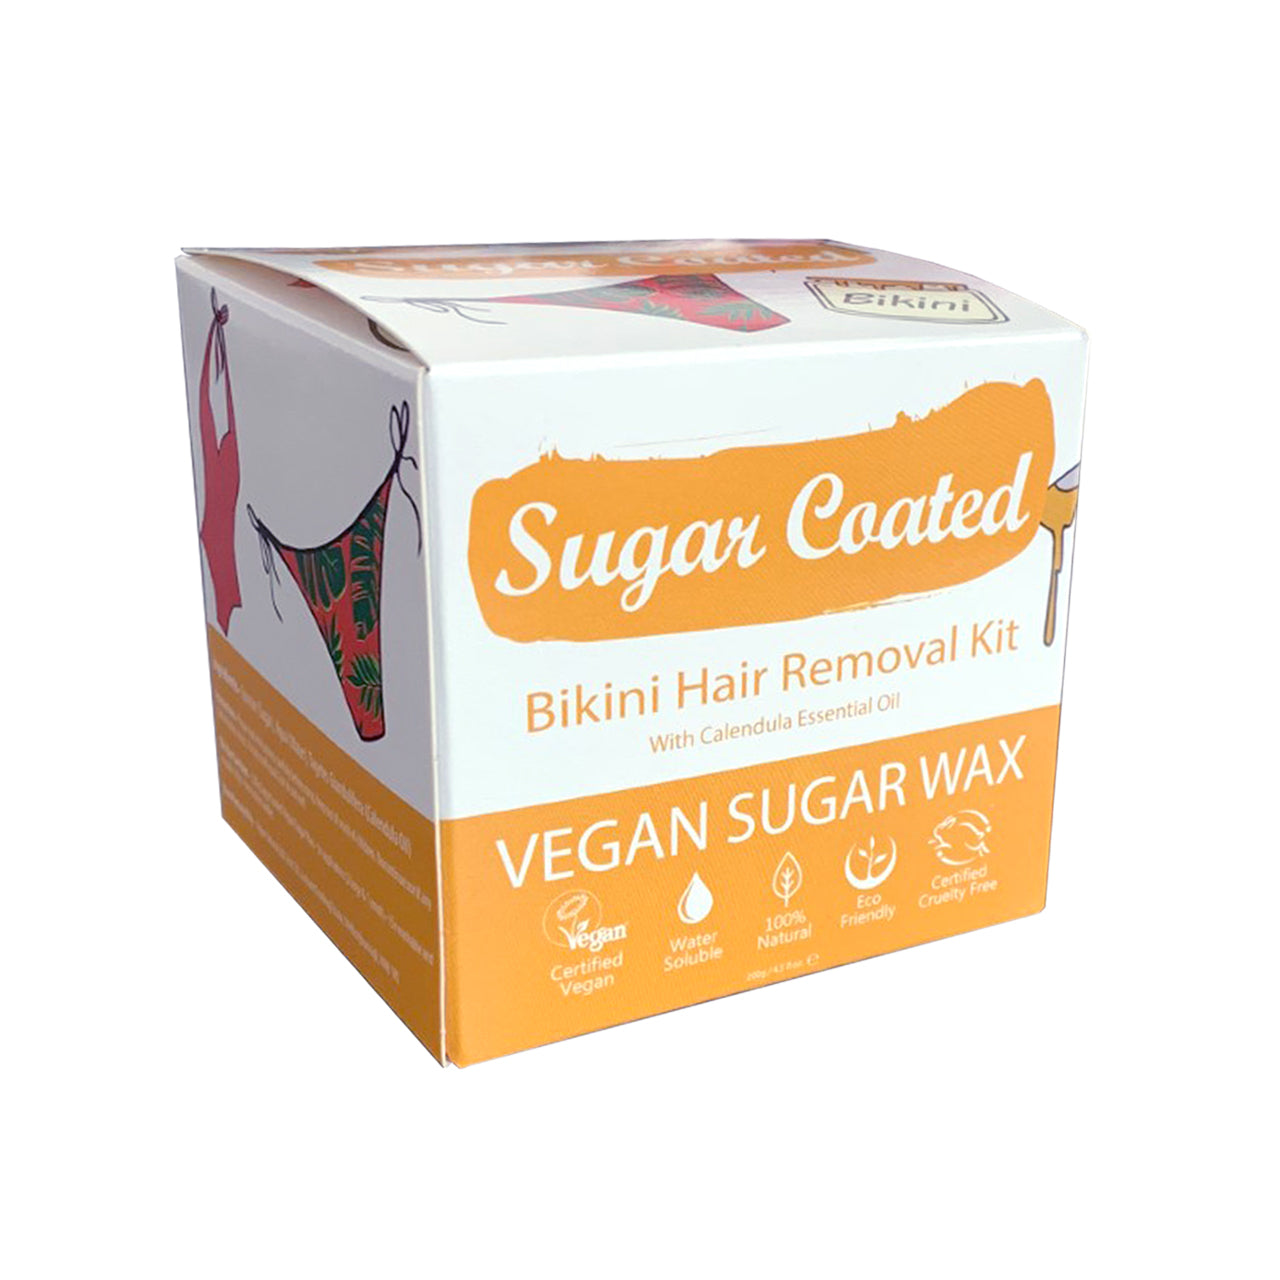 Sugar Coated Bikini box angled view with icons showing: Vegan, water-soluble, natural, eco-friendly, cruelty-free